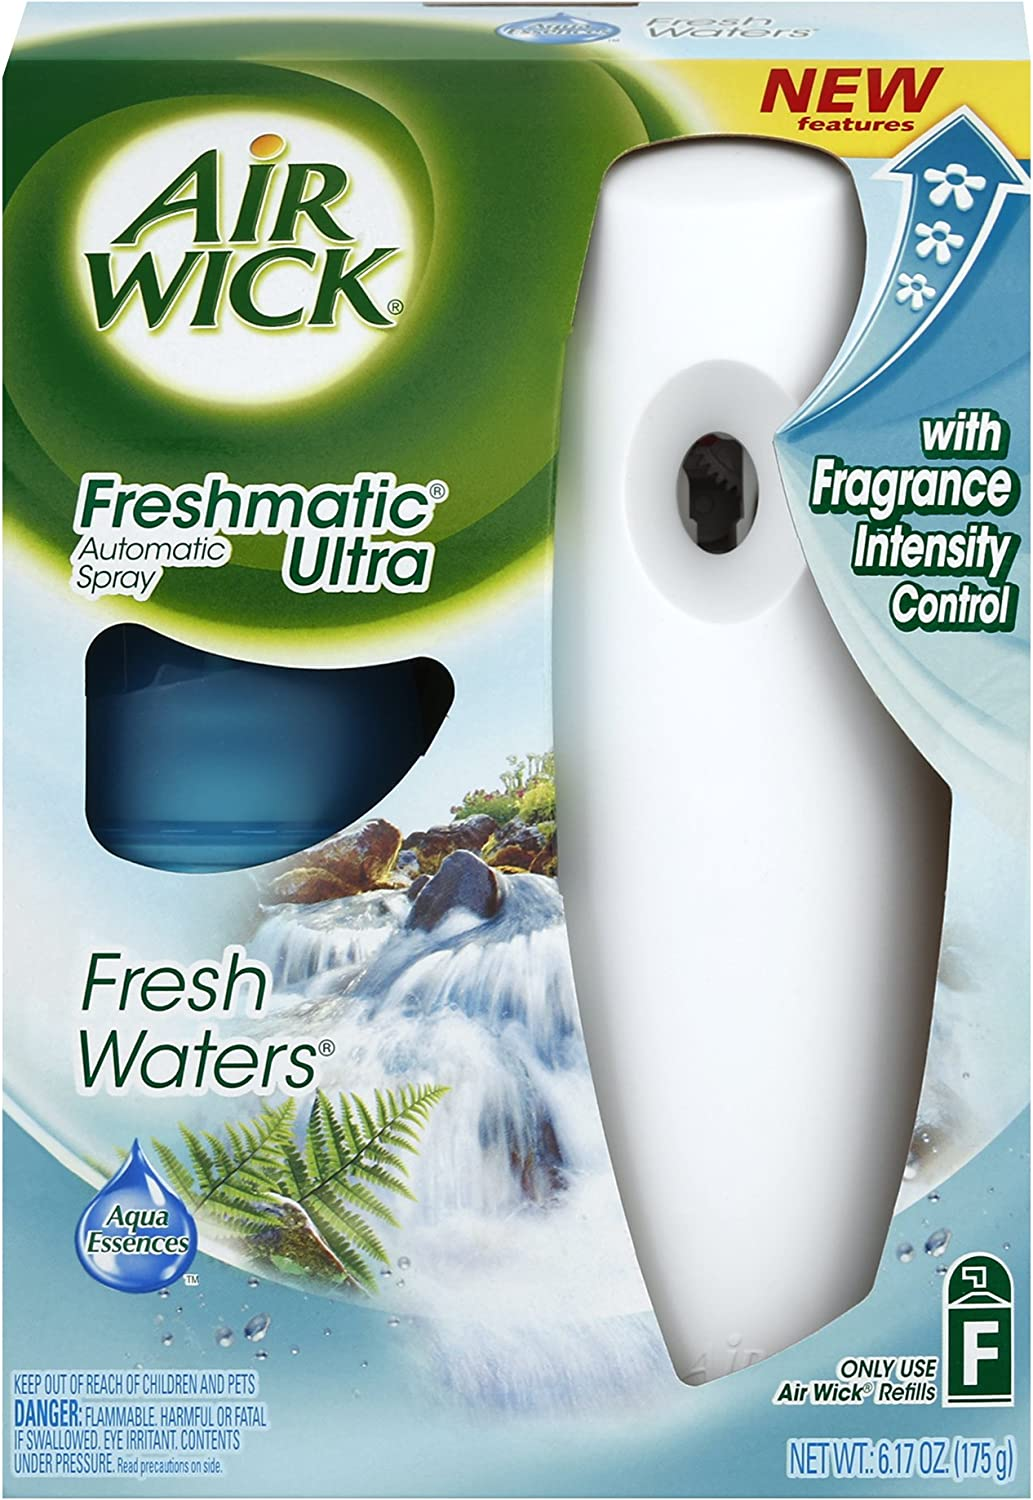 Air Wick Freshmatic Automatic Air Freshener Spray Starter Kit, Fresh Waters Scent, 1 Count